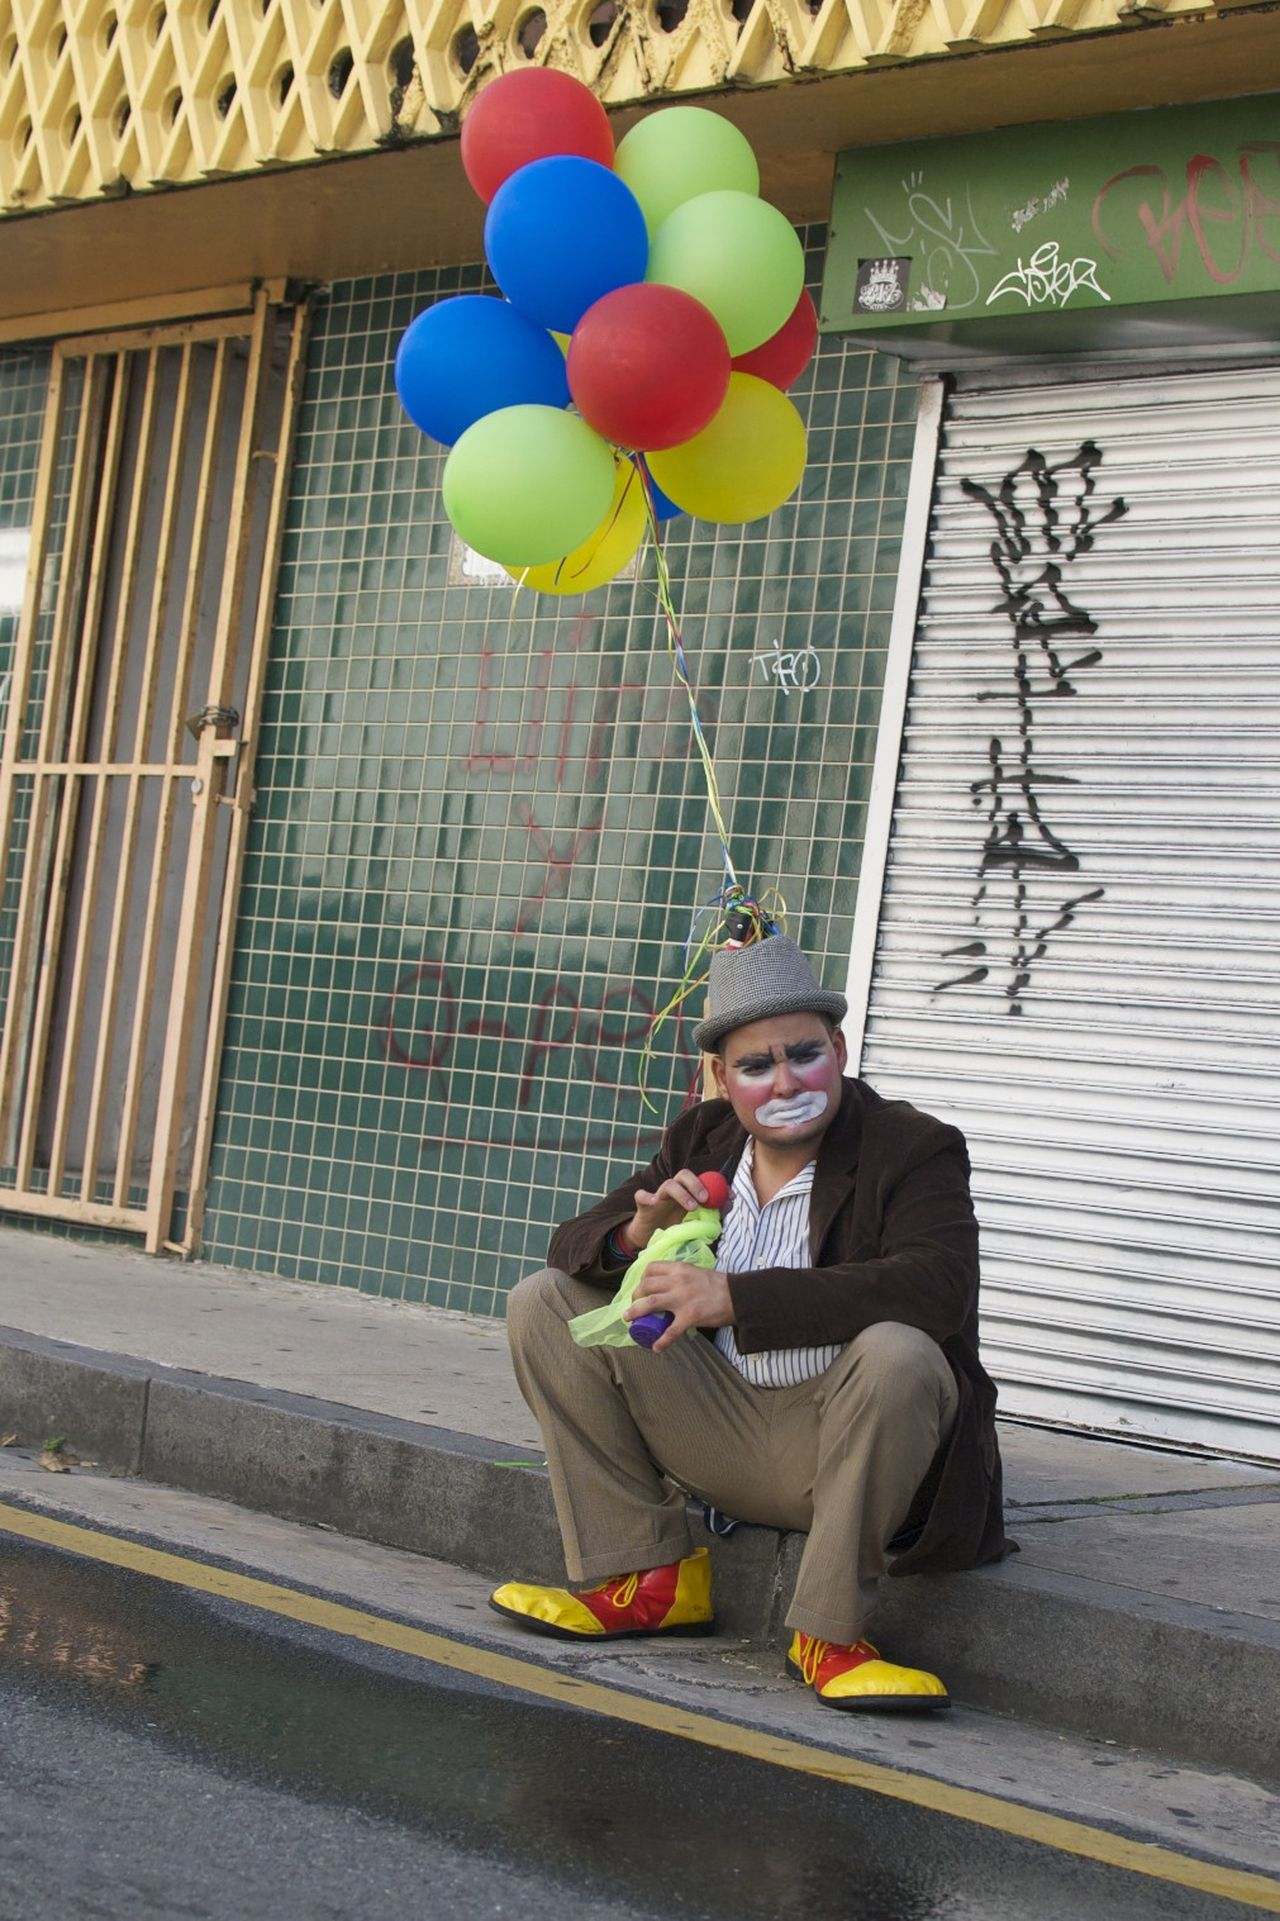 Beautiful stock photos of clown, balloon, portrait, sitting, celebration